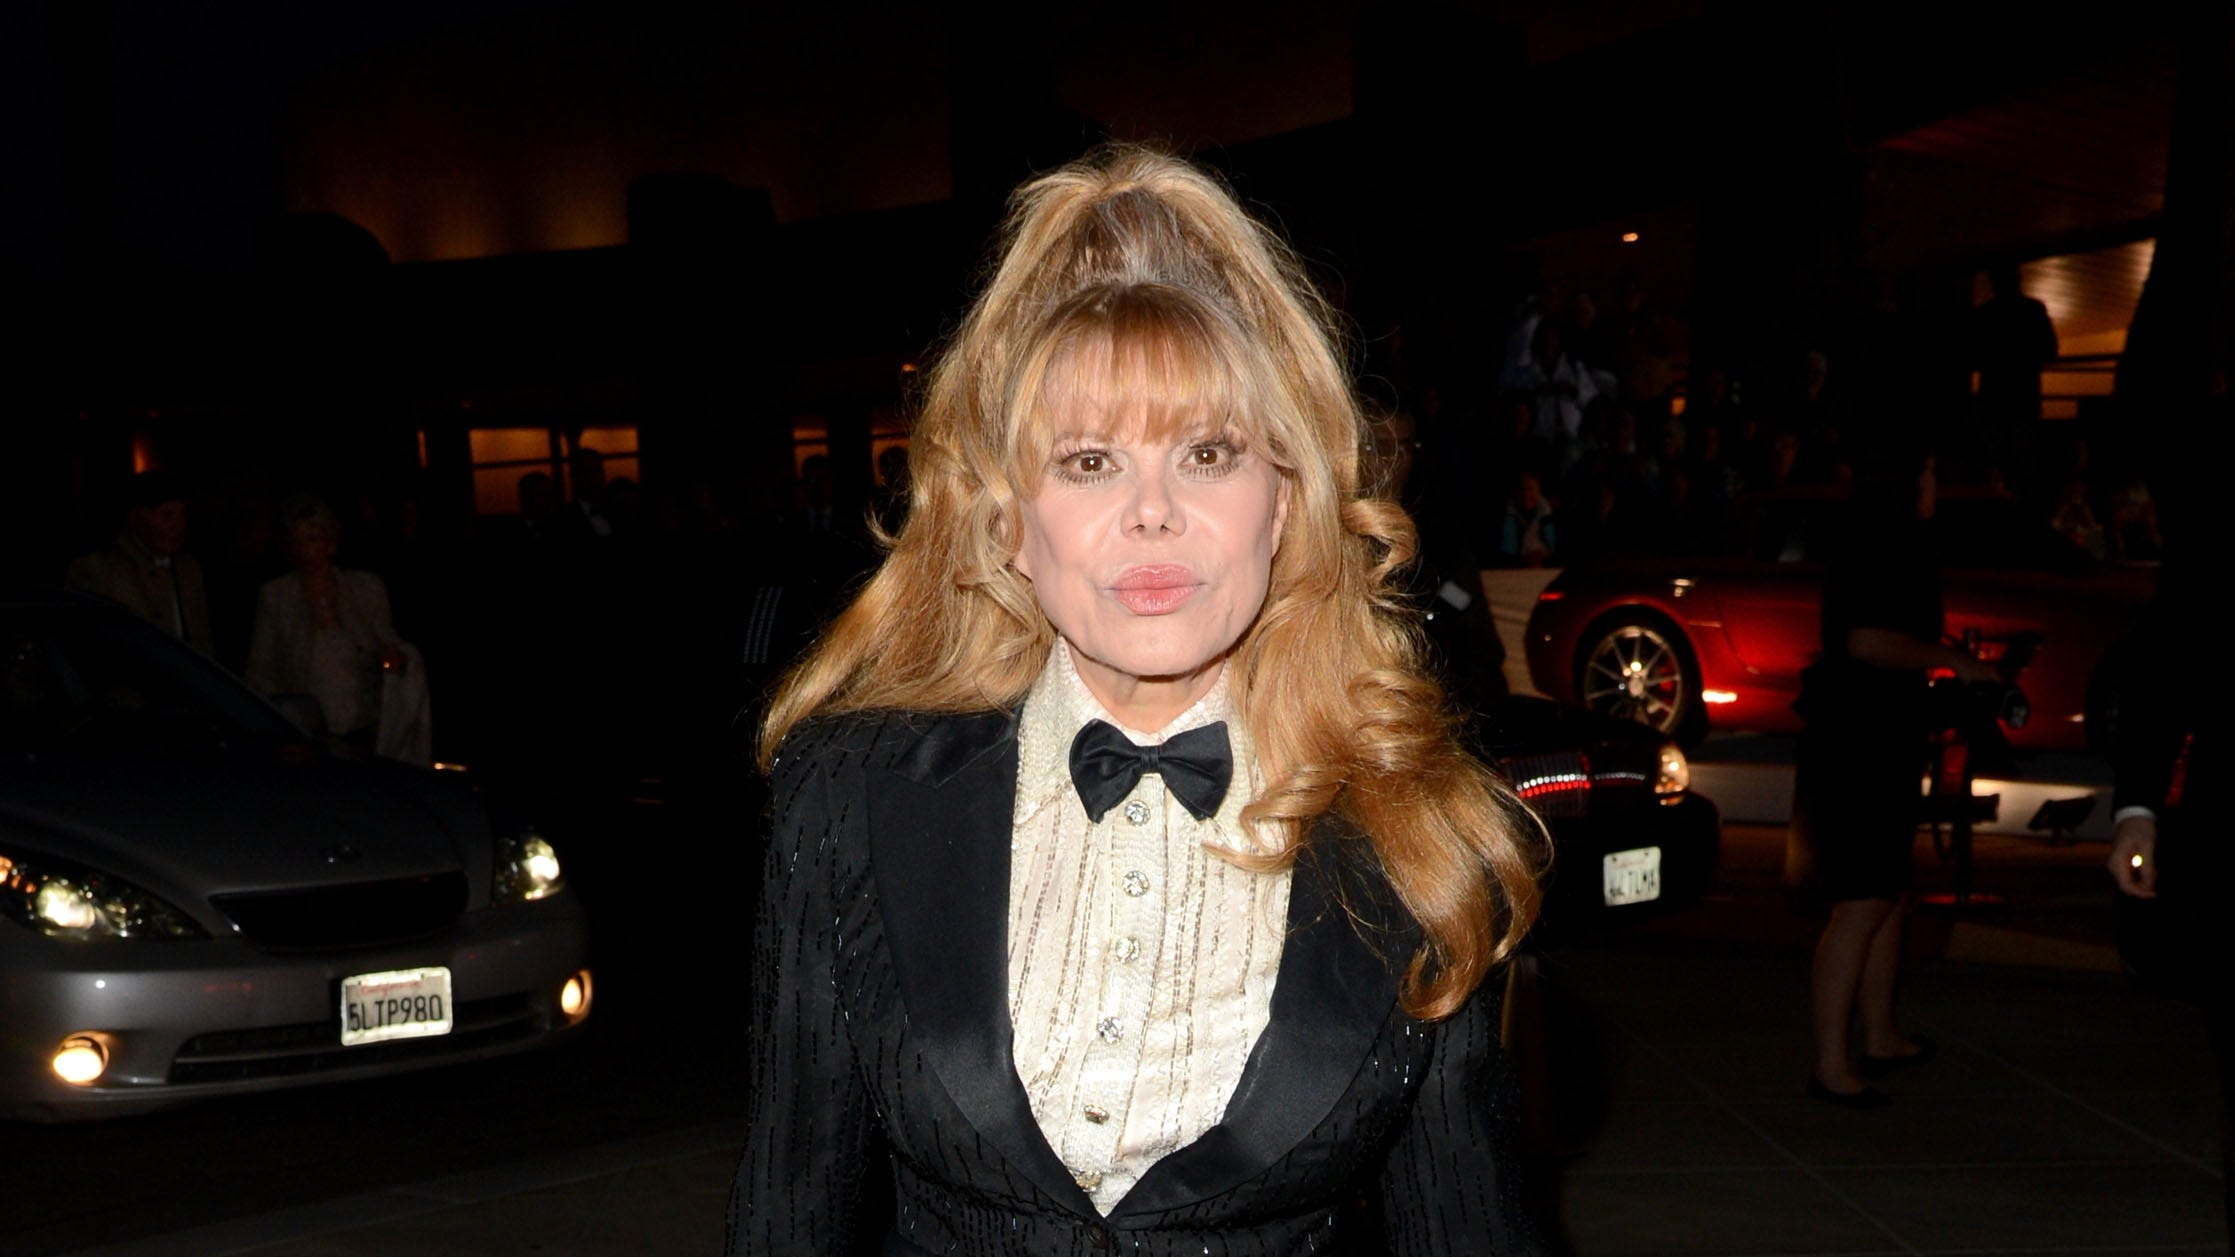 After husband's suicide, Charo urges fans to reach out to loved ones about depression - USA TODAY